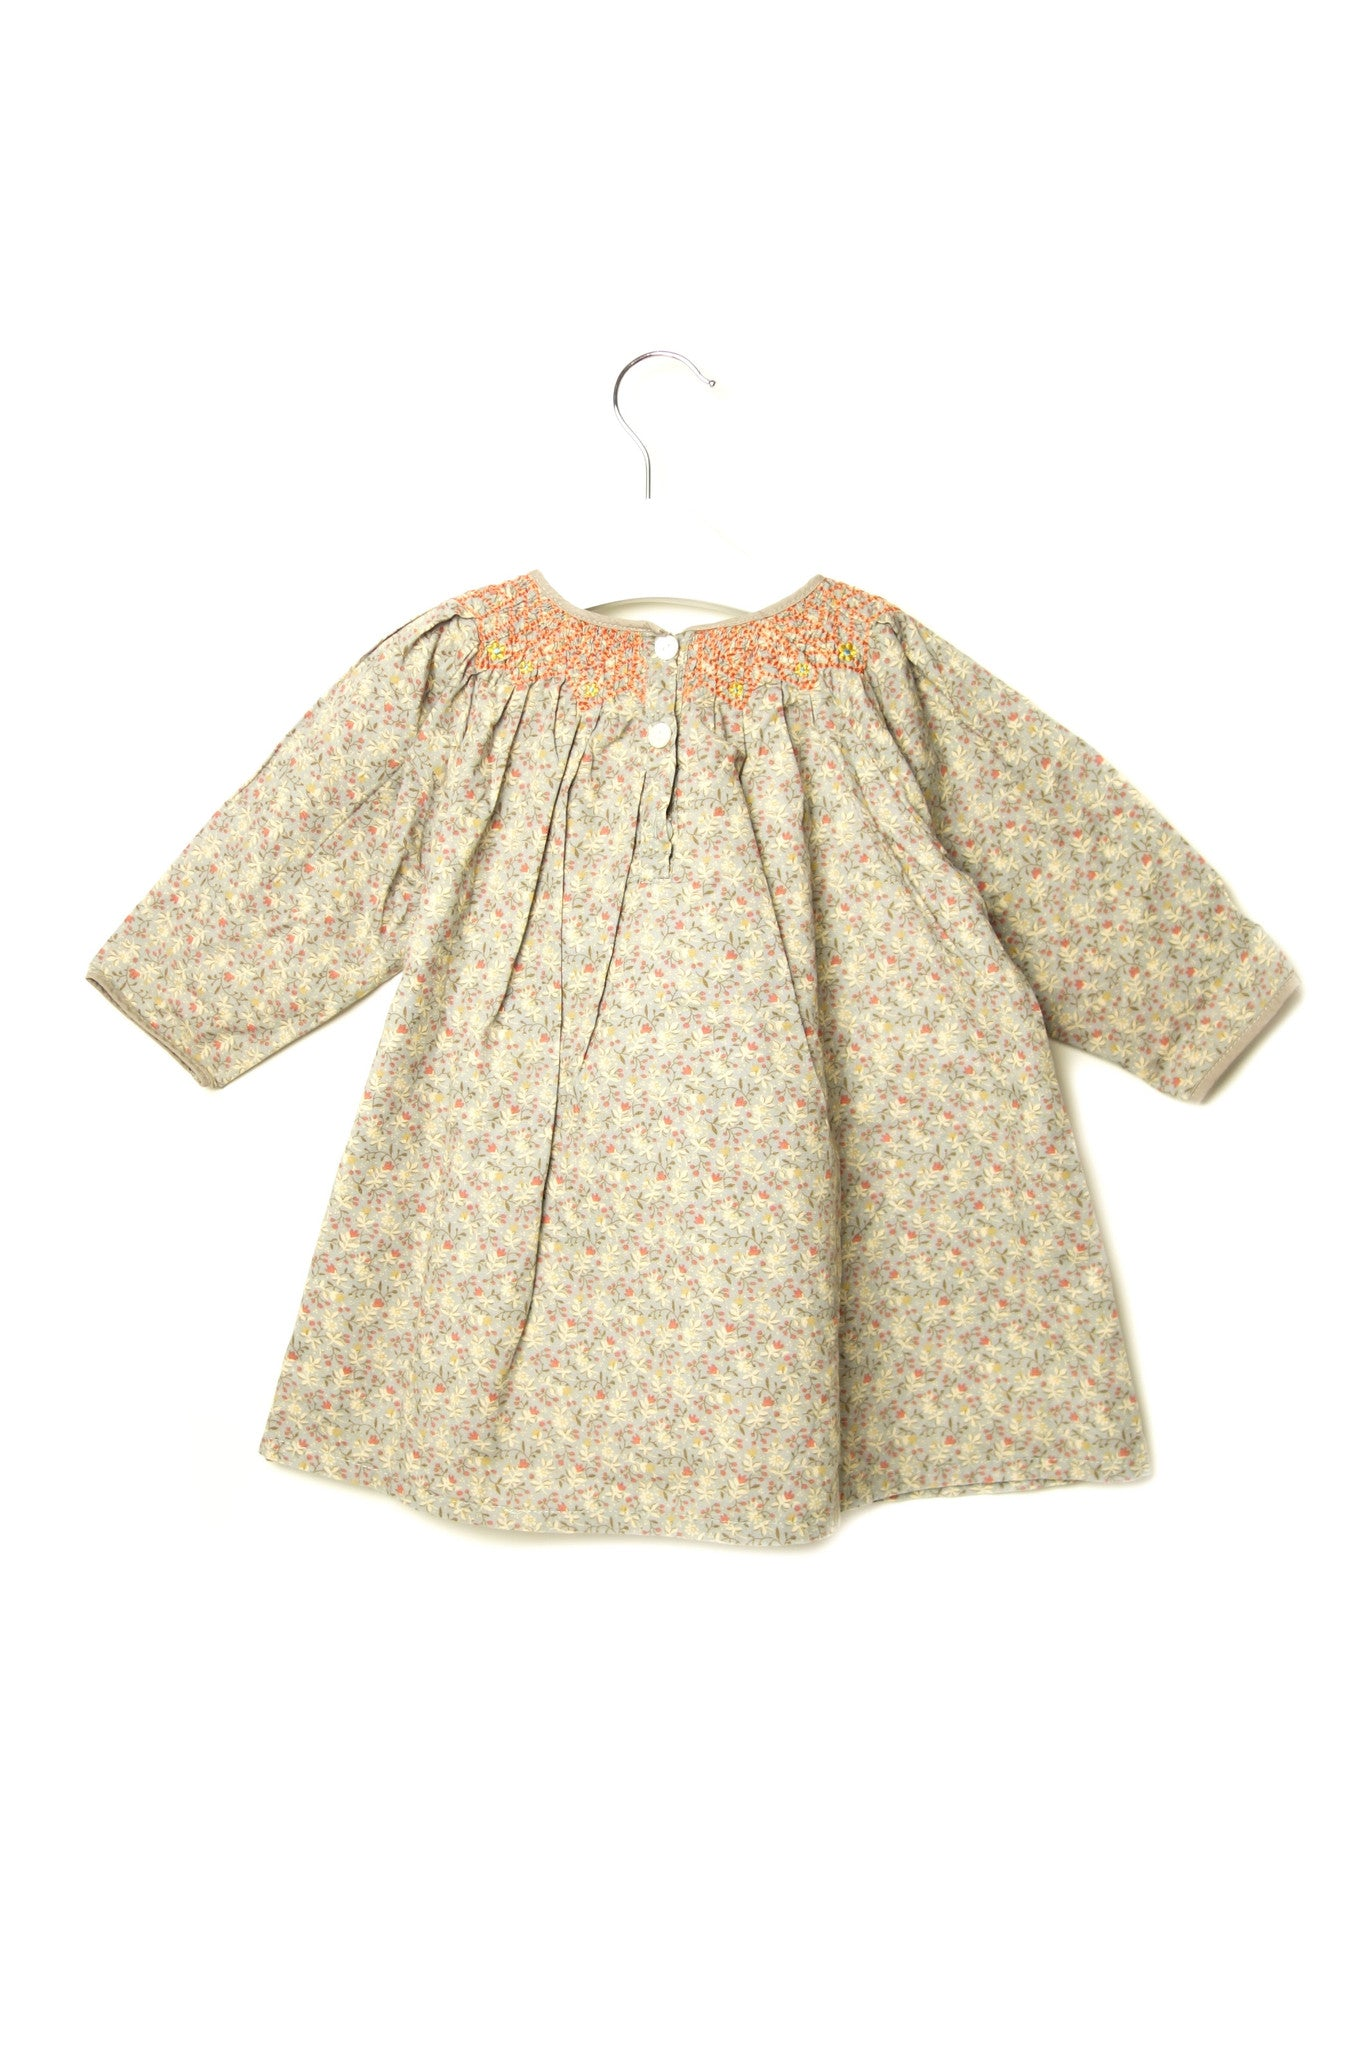 10001727 Elfie London Baby~Dress 18M at Retykle